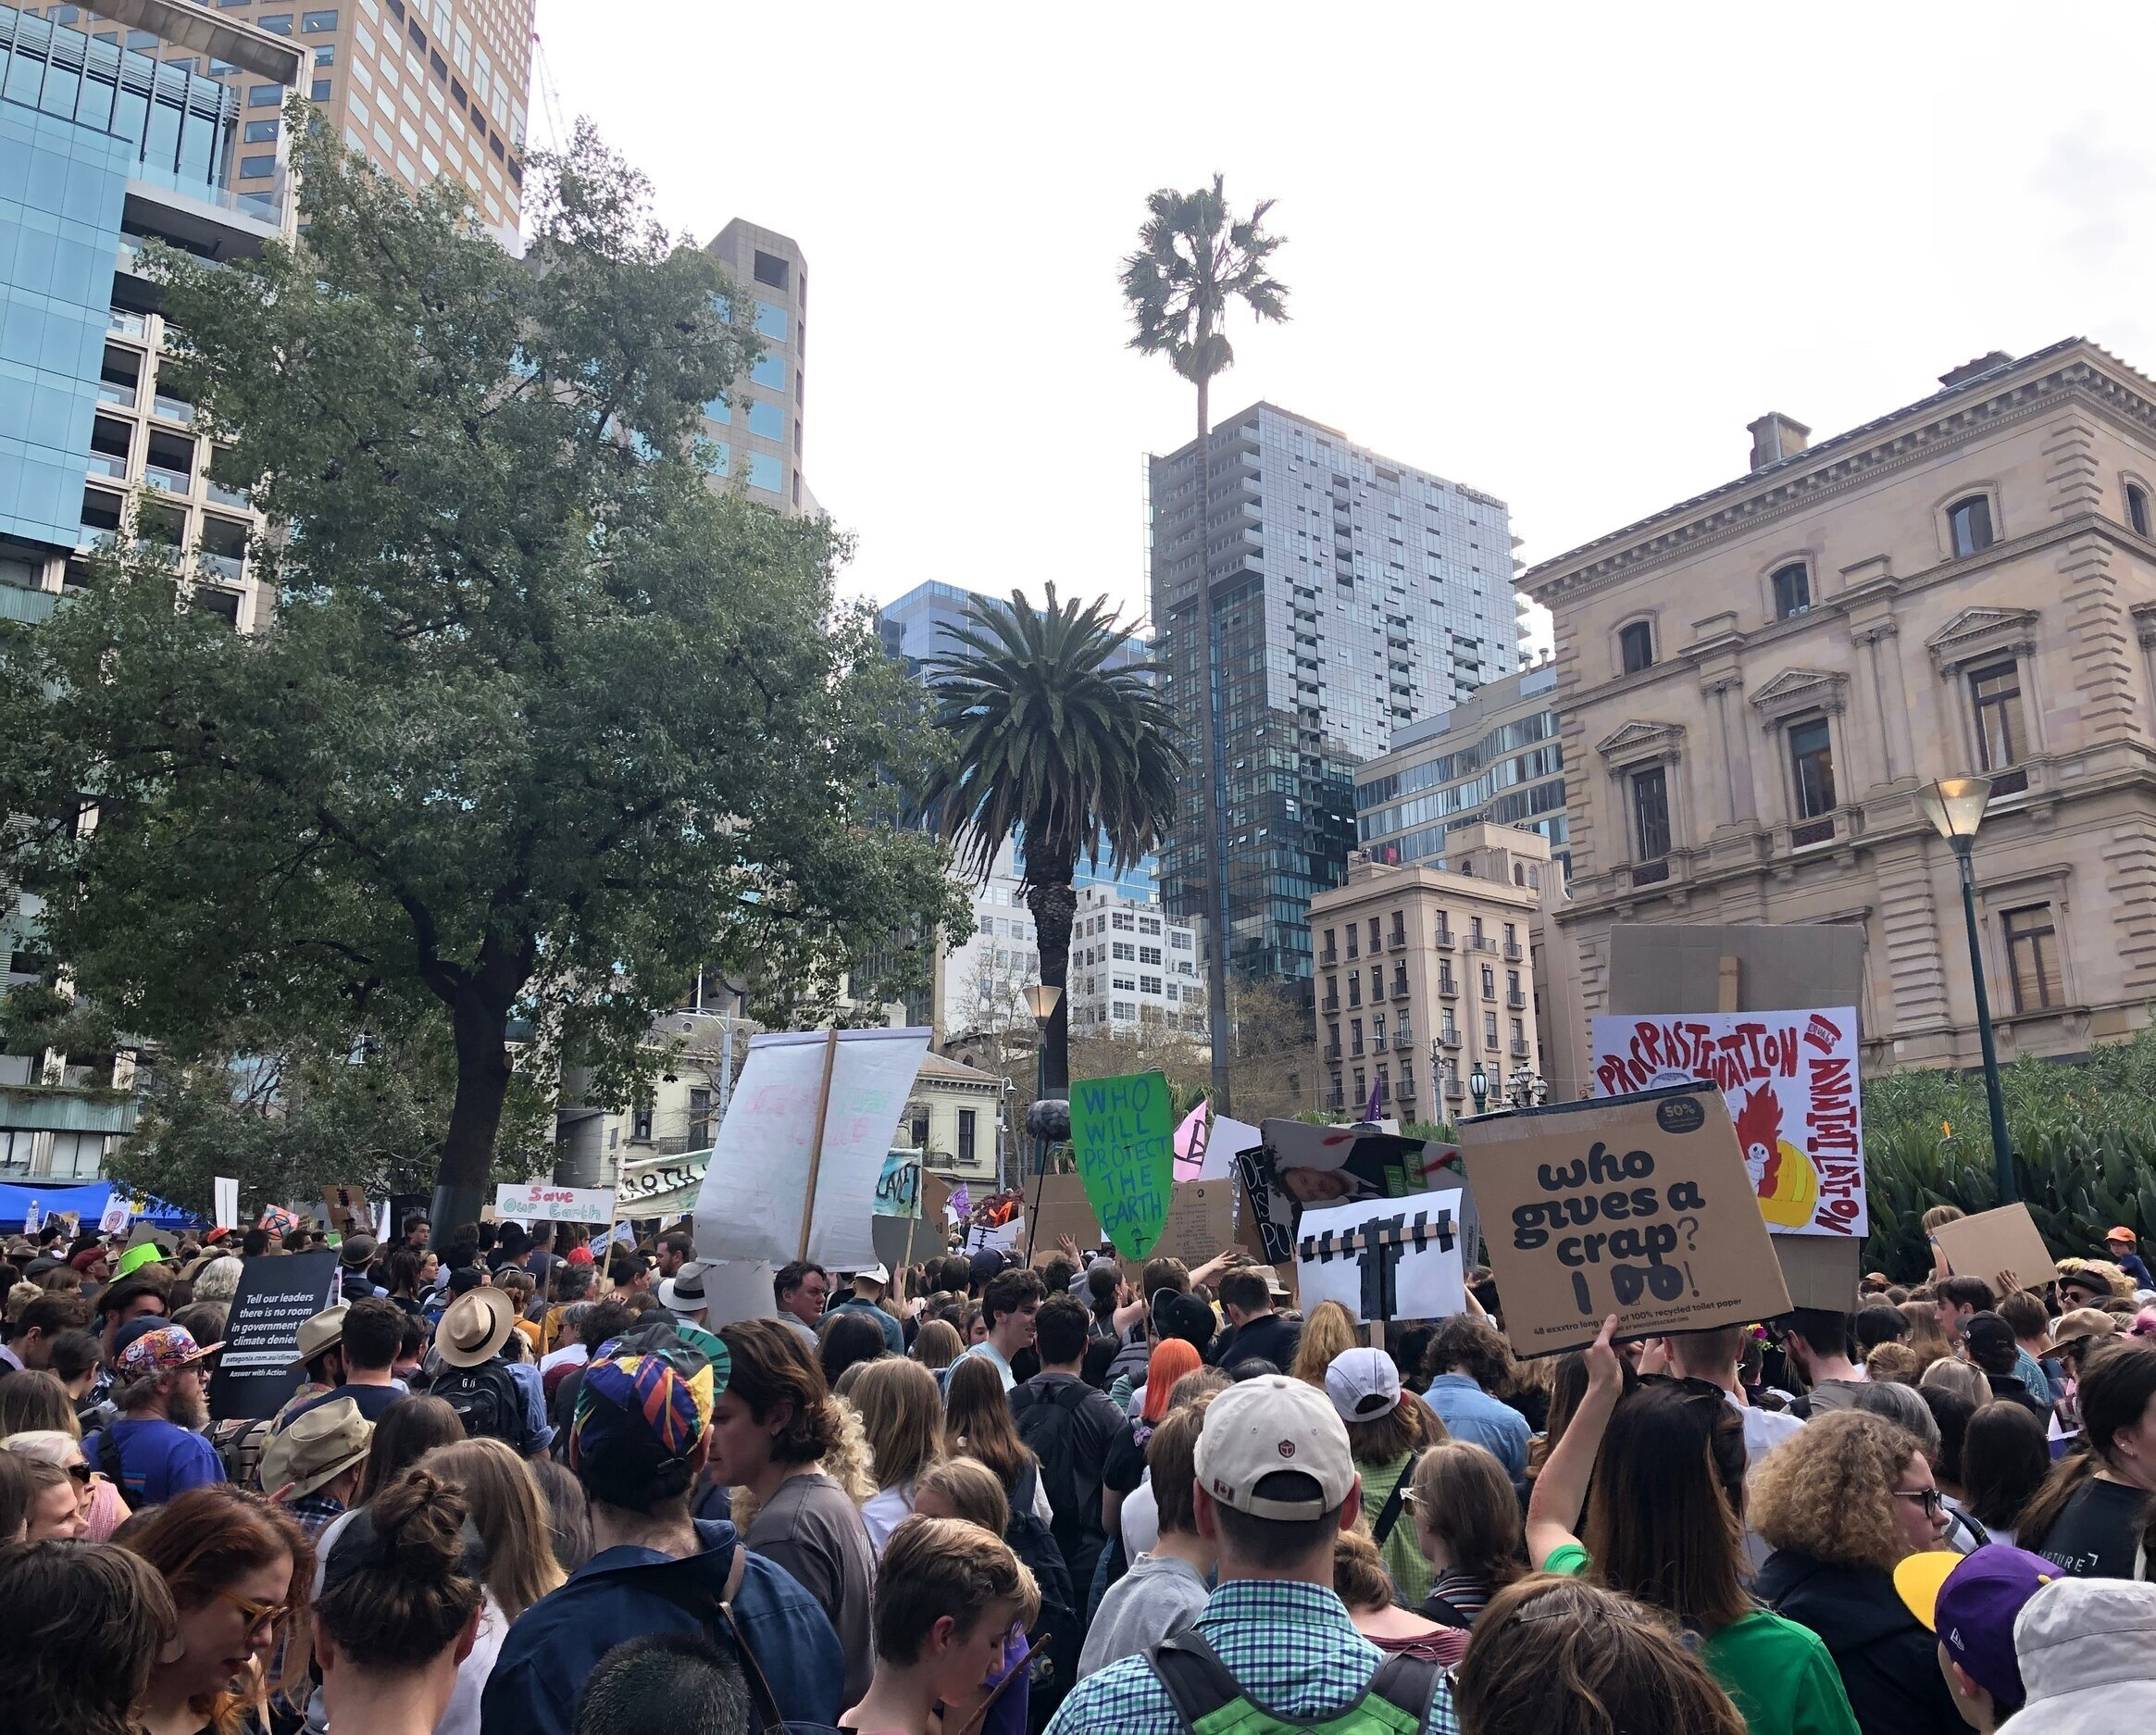 A view of the School Strike 4 Climate rally from the Treasury Gardens. Photograph by Coral Huckstep